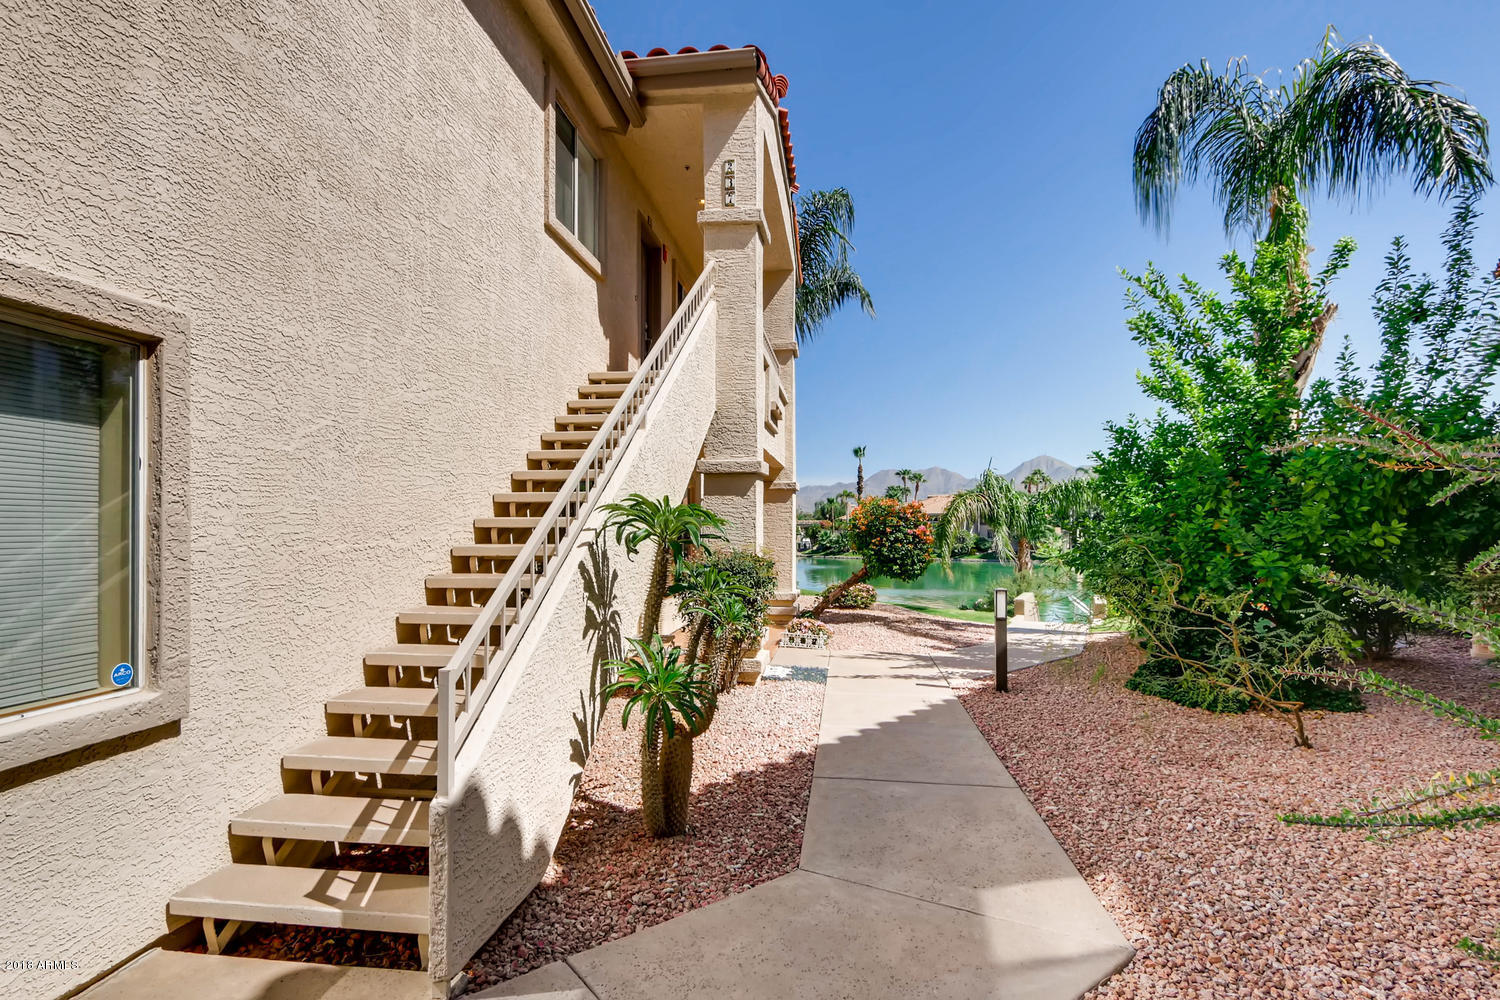 MLS 5812981 10080 E MOUNTAINVIEW LAKE Drive Unit 237 Building, Scottsdale, AZ 85258 Scottsdale AZ Scottsdale Ranch